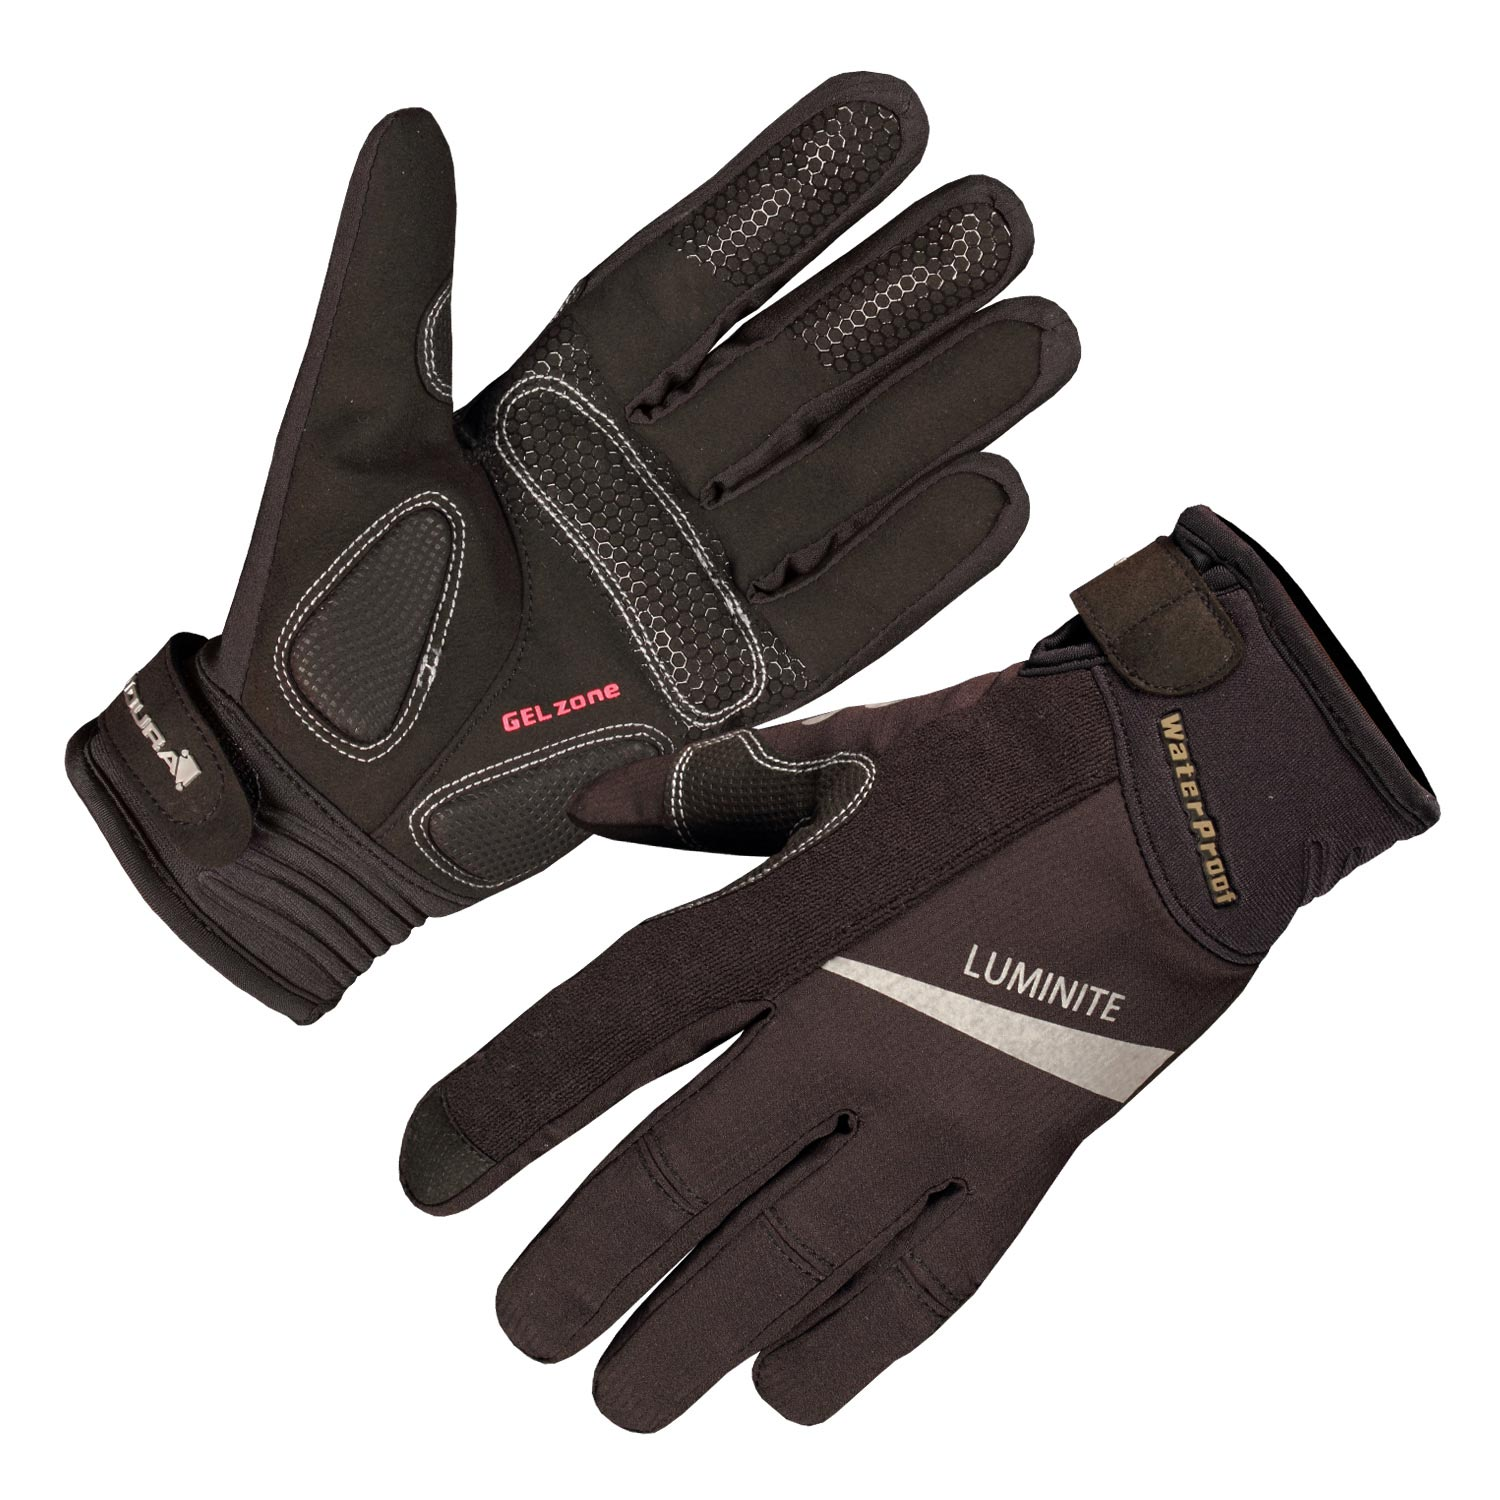 Wms Luminite Glove Black